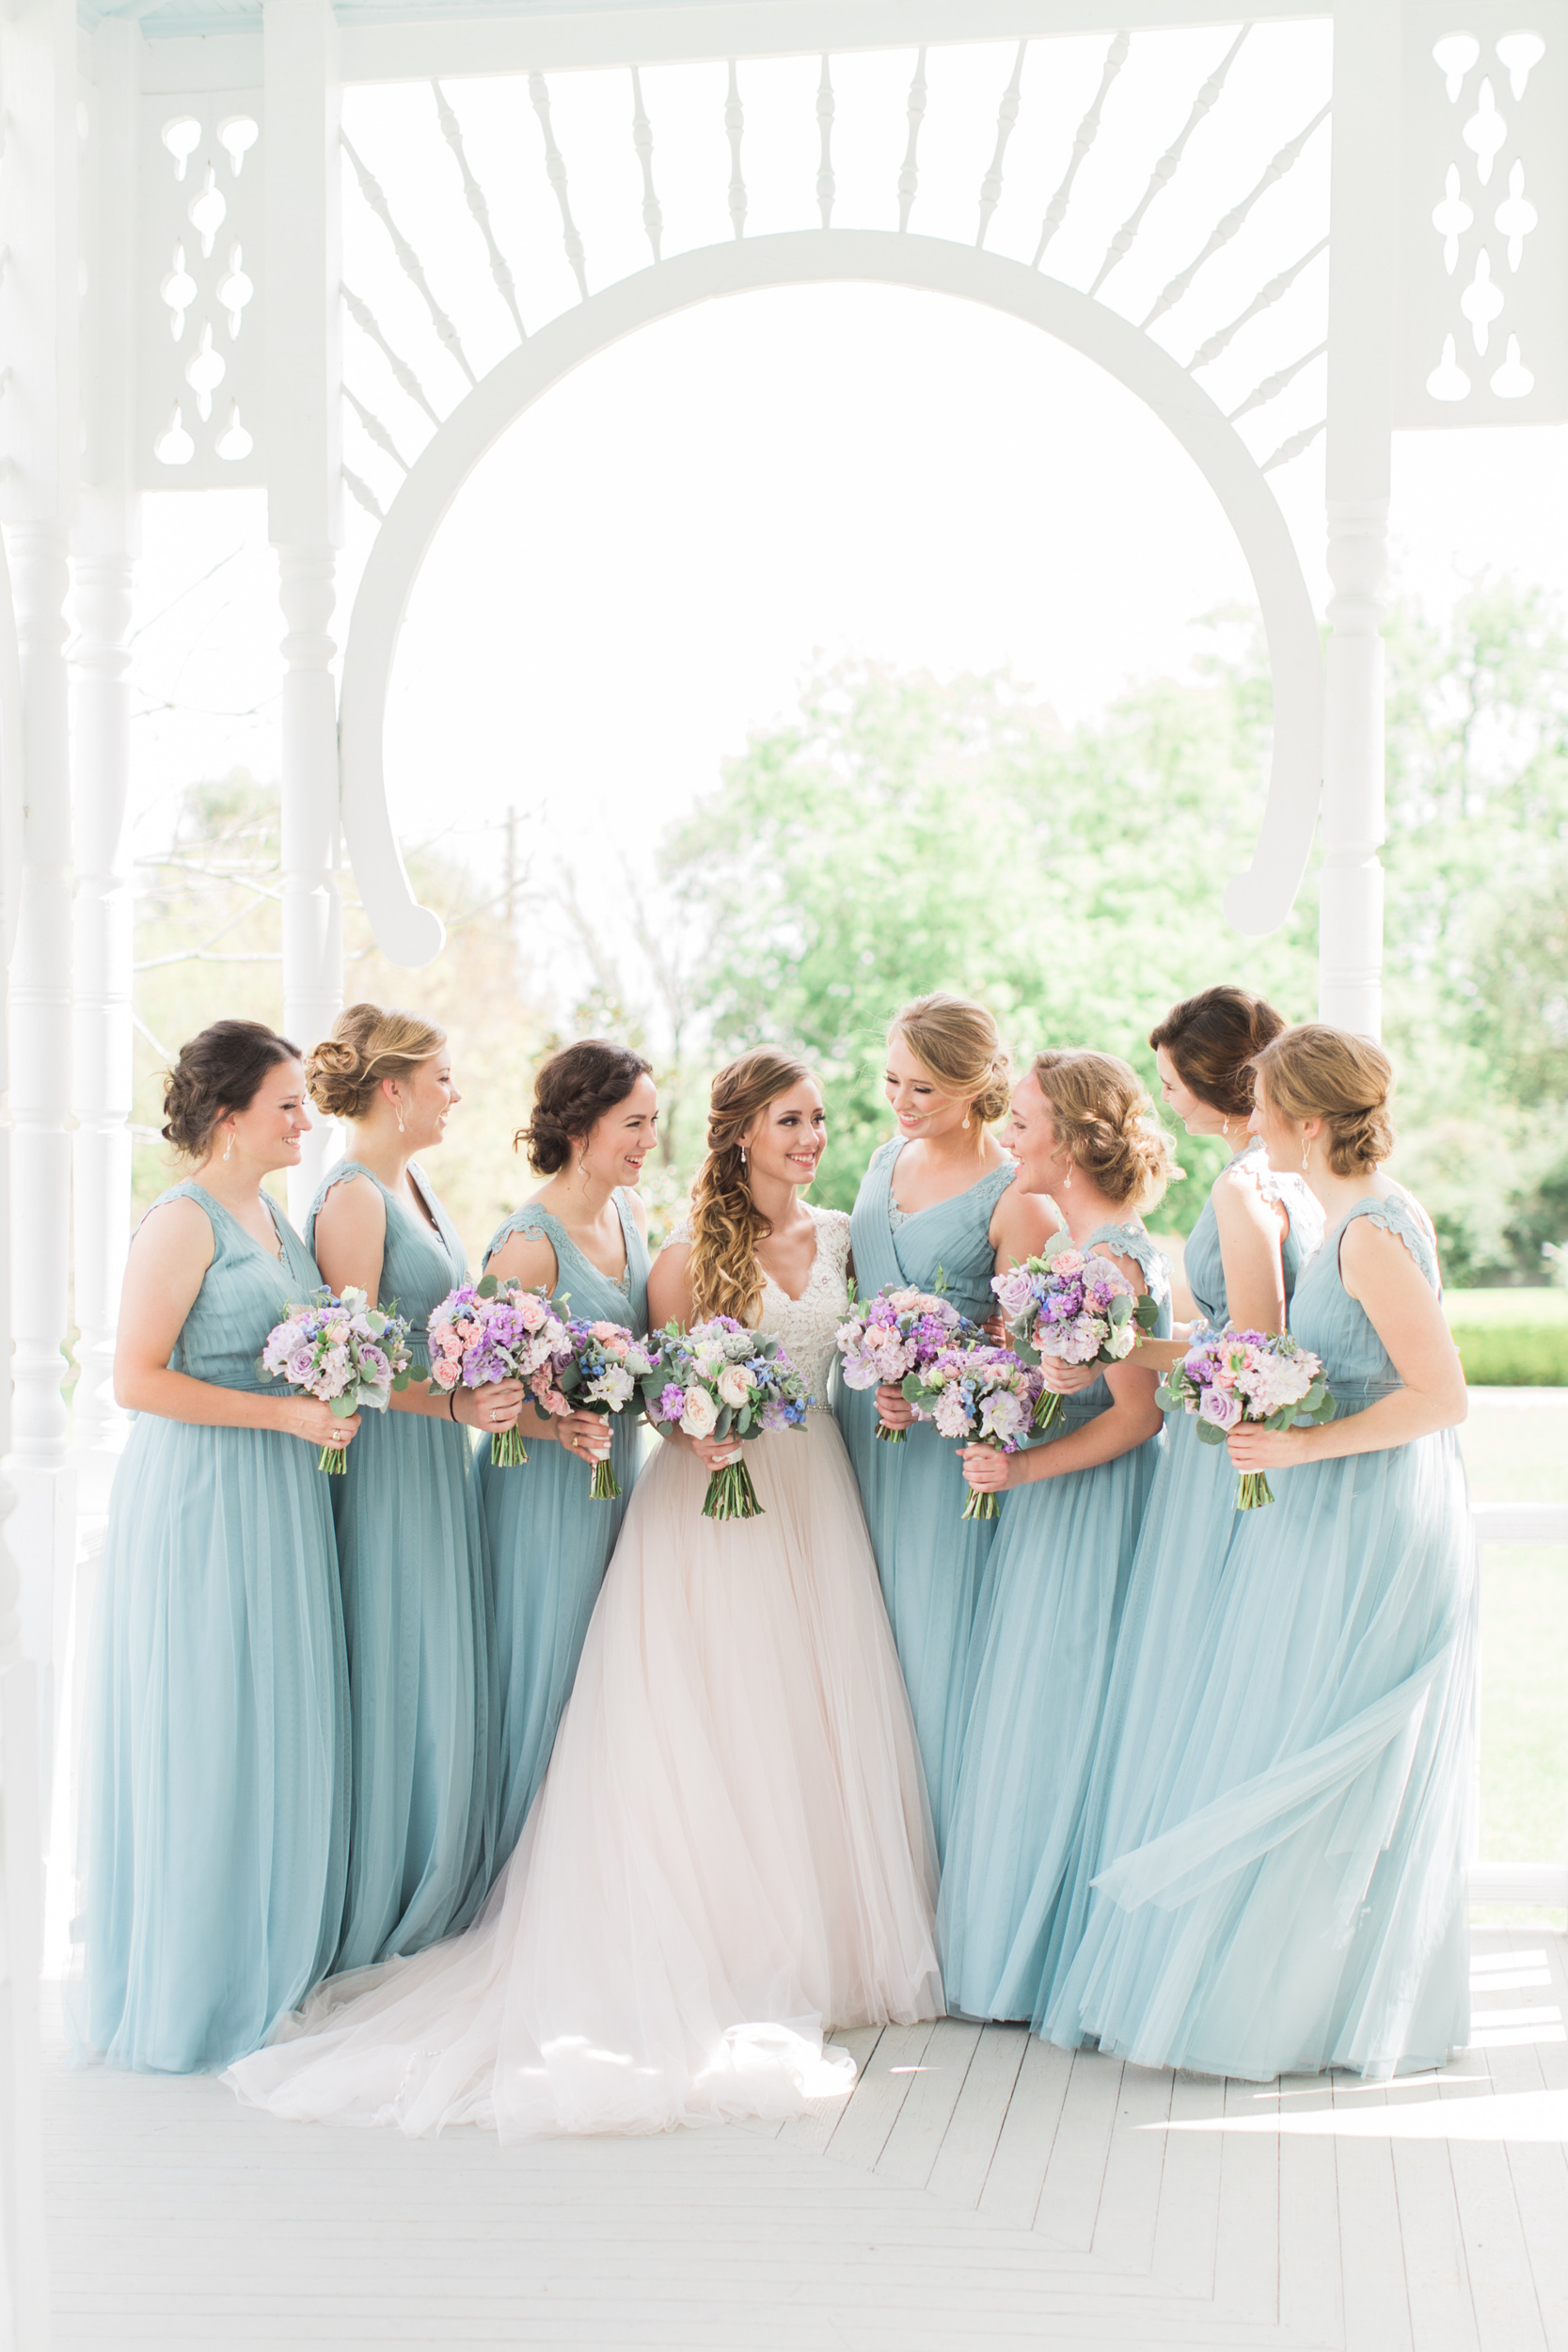 Barr_Mansion_Wedding-61.JPG